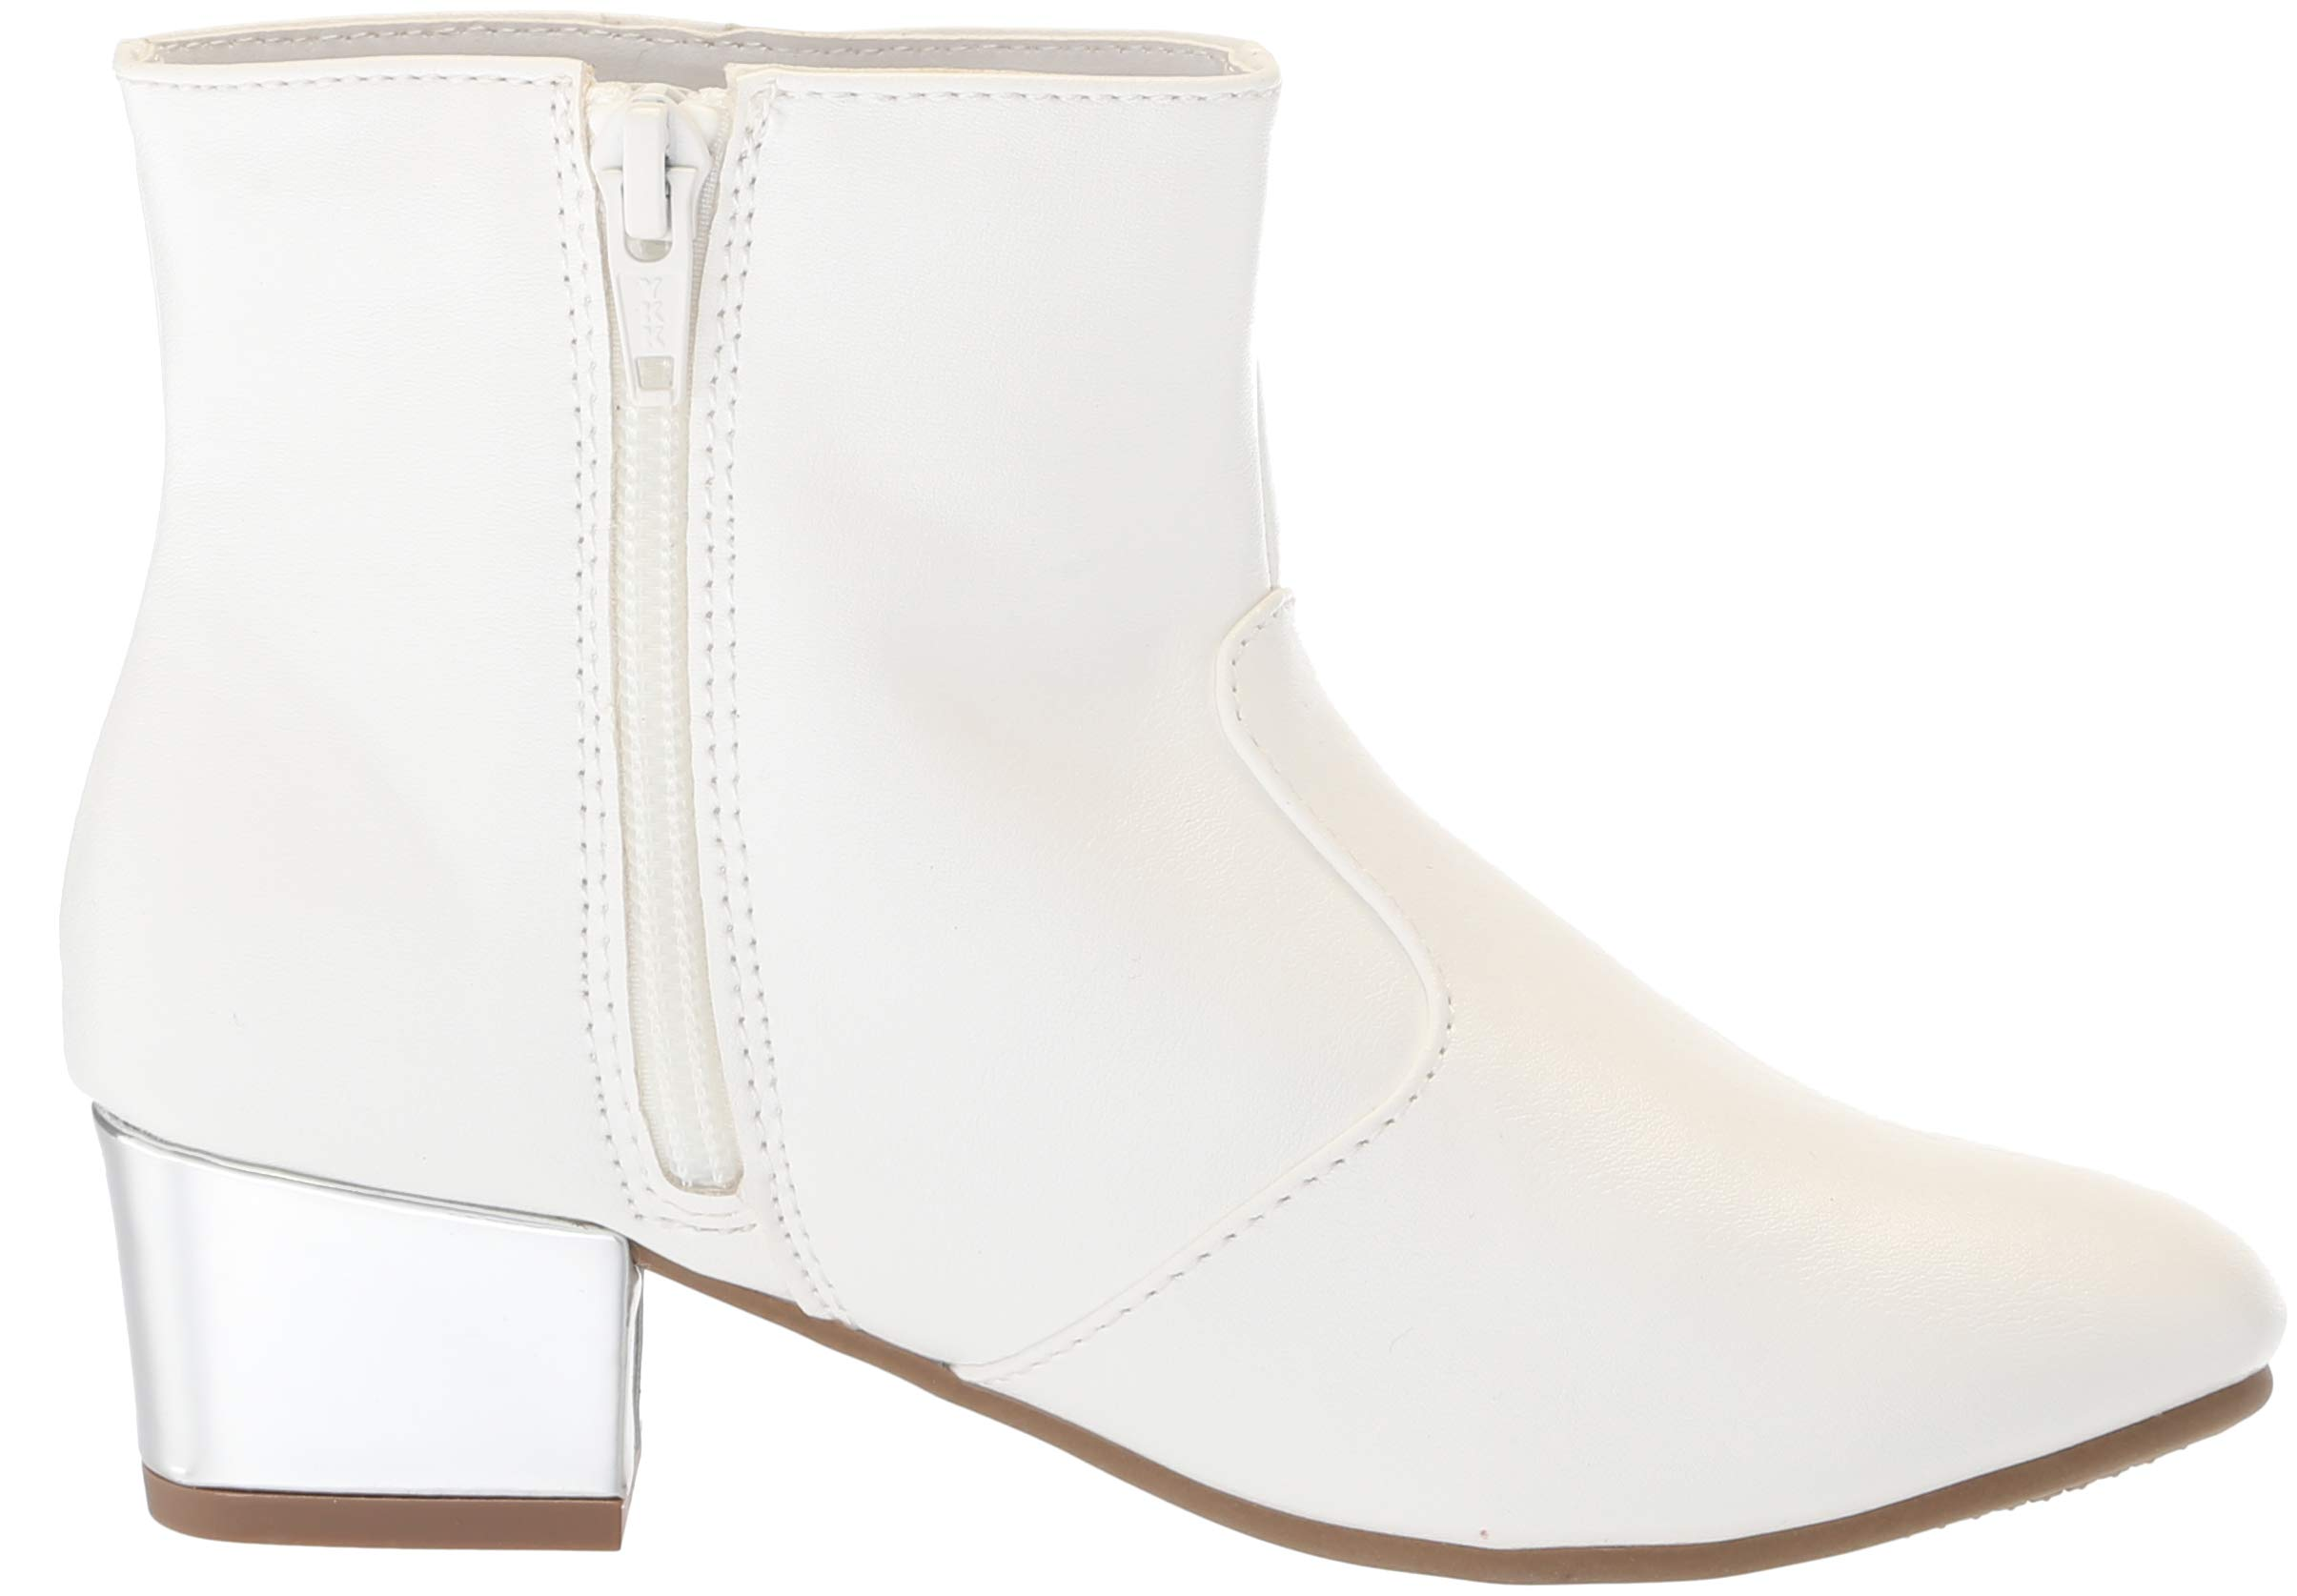 The Children's Place Girls' Bootie Fashion Boot, White, Youth 3 Child US Little Kid by The Children's Place (Image #7)